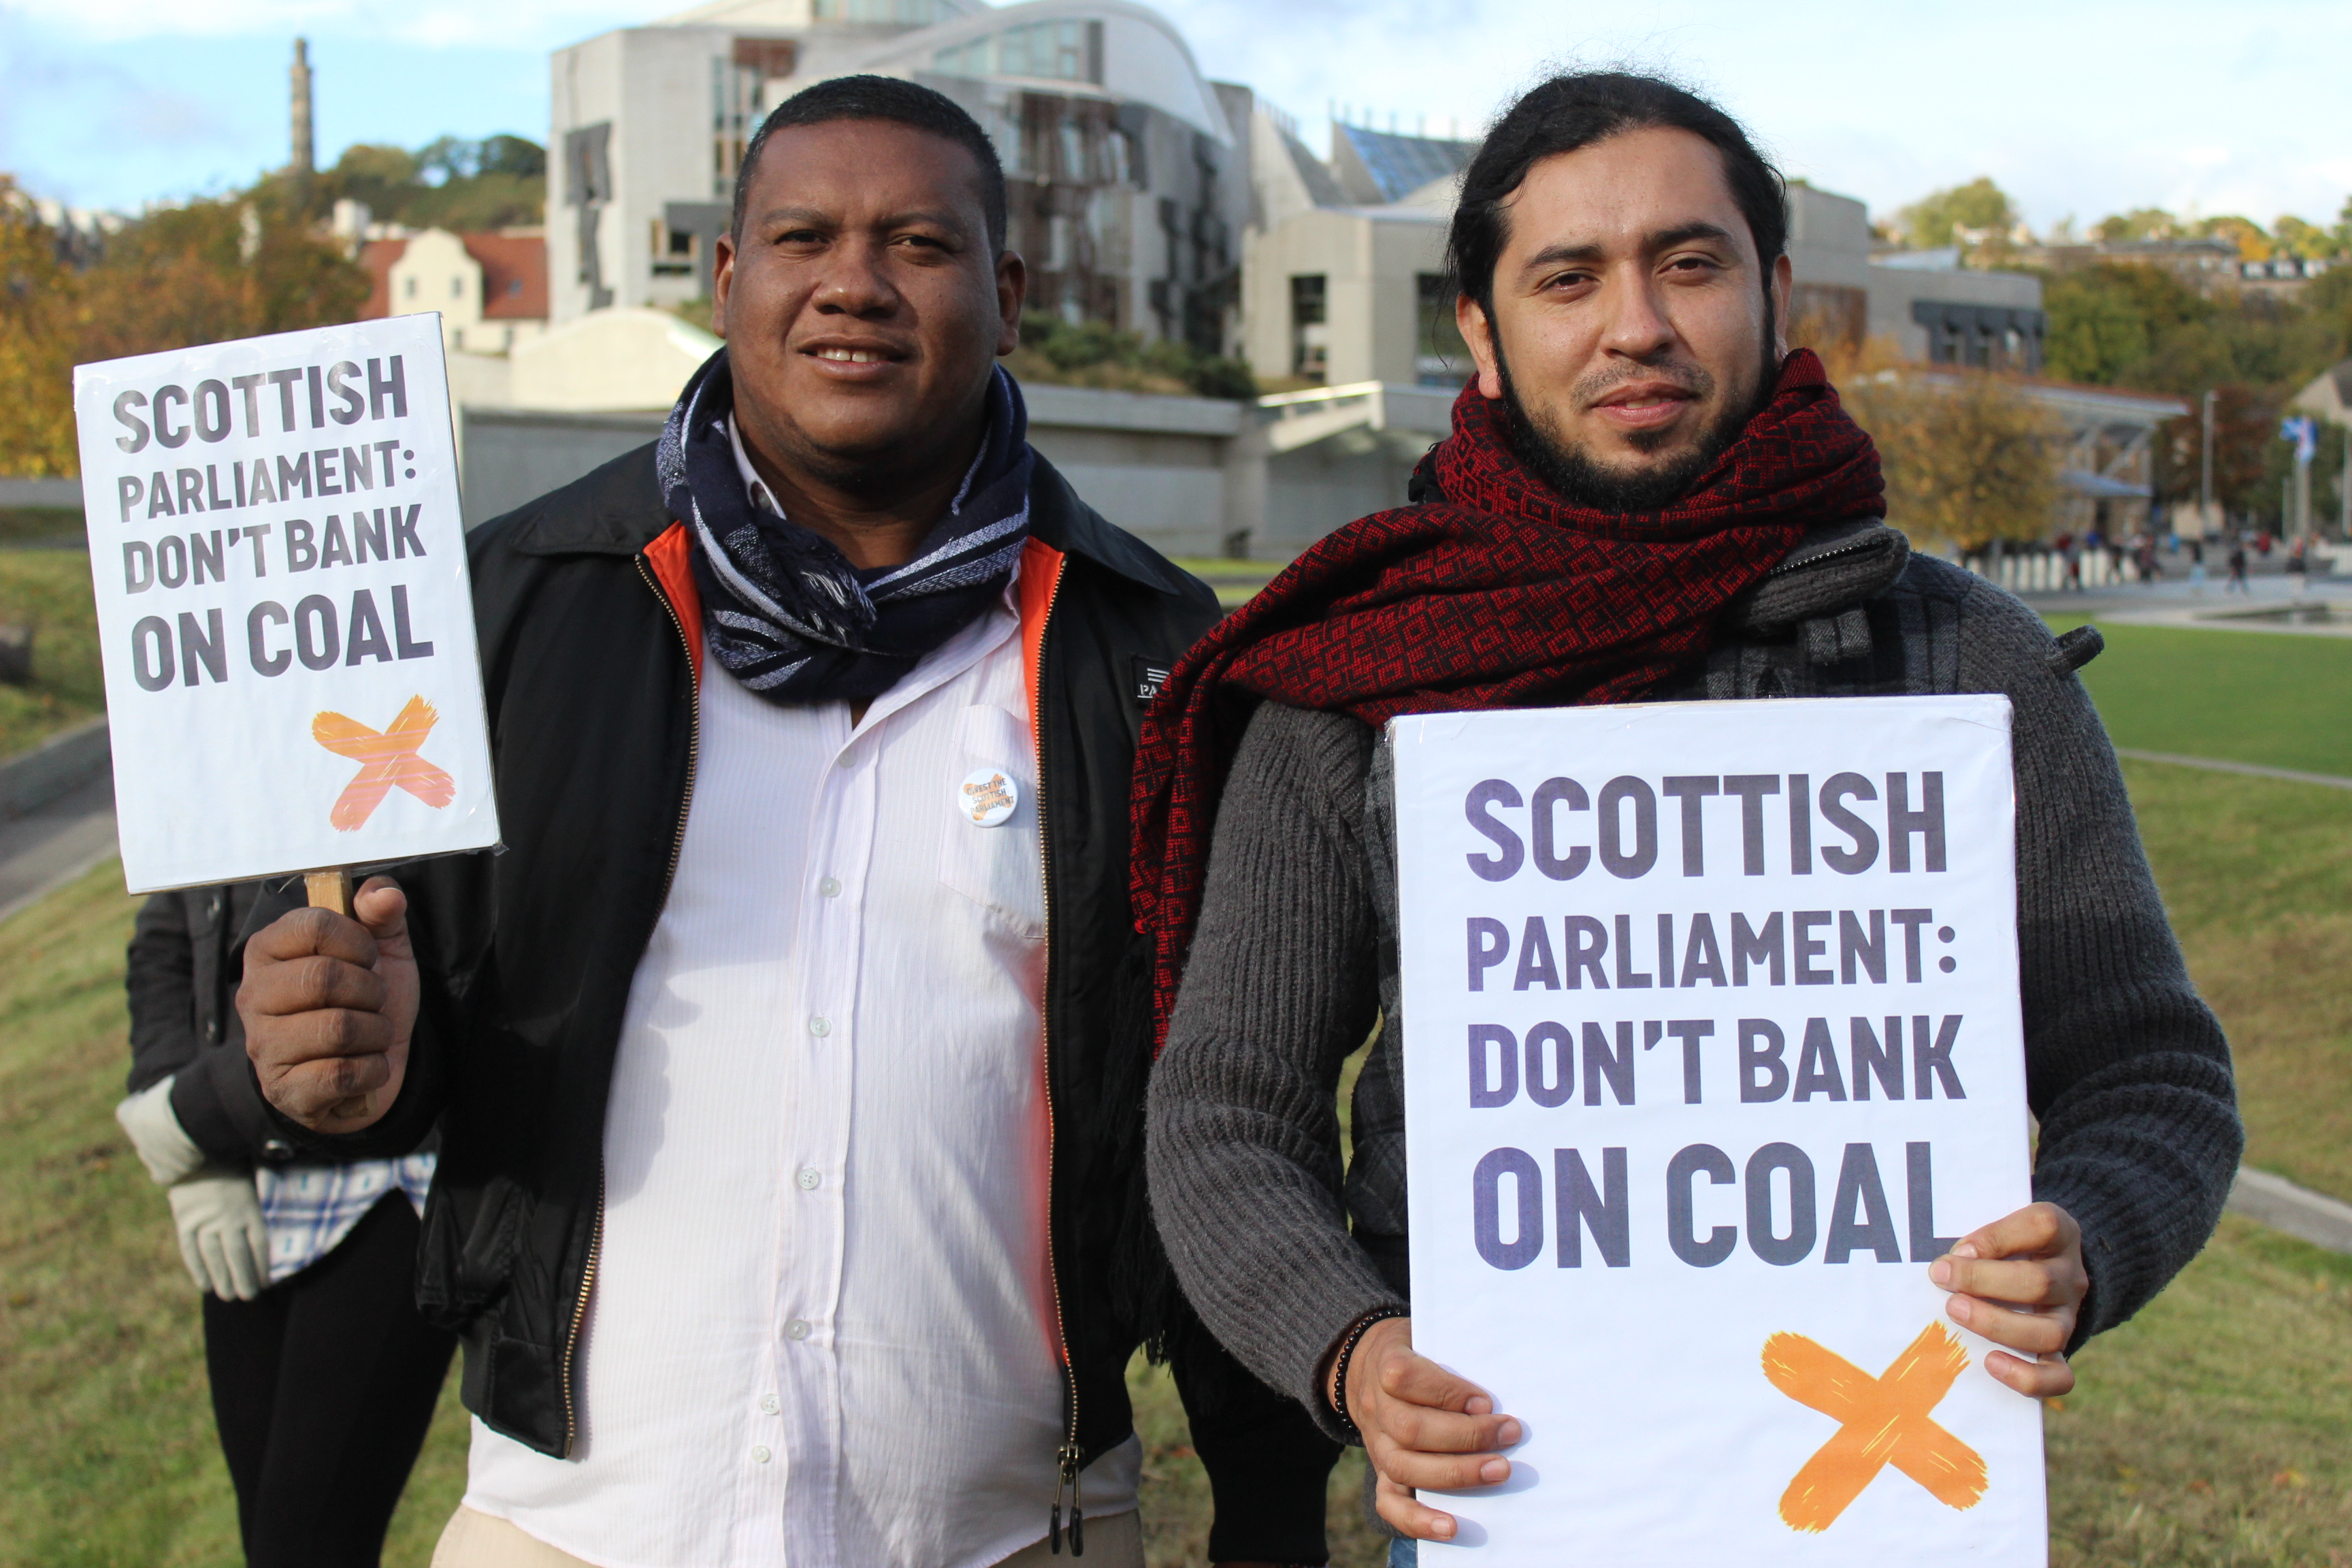 Samuel Arregoces and Danilo Urrea visited the Scottish Parliament to demand an end to investments in Colombian coal.